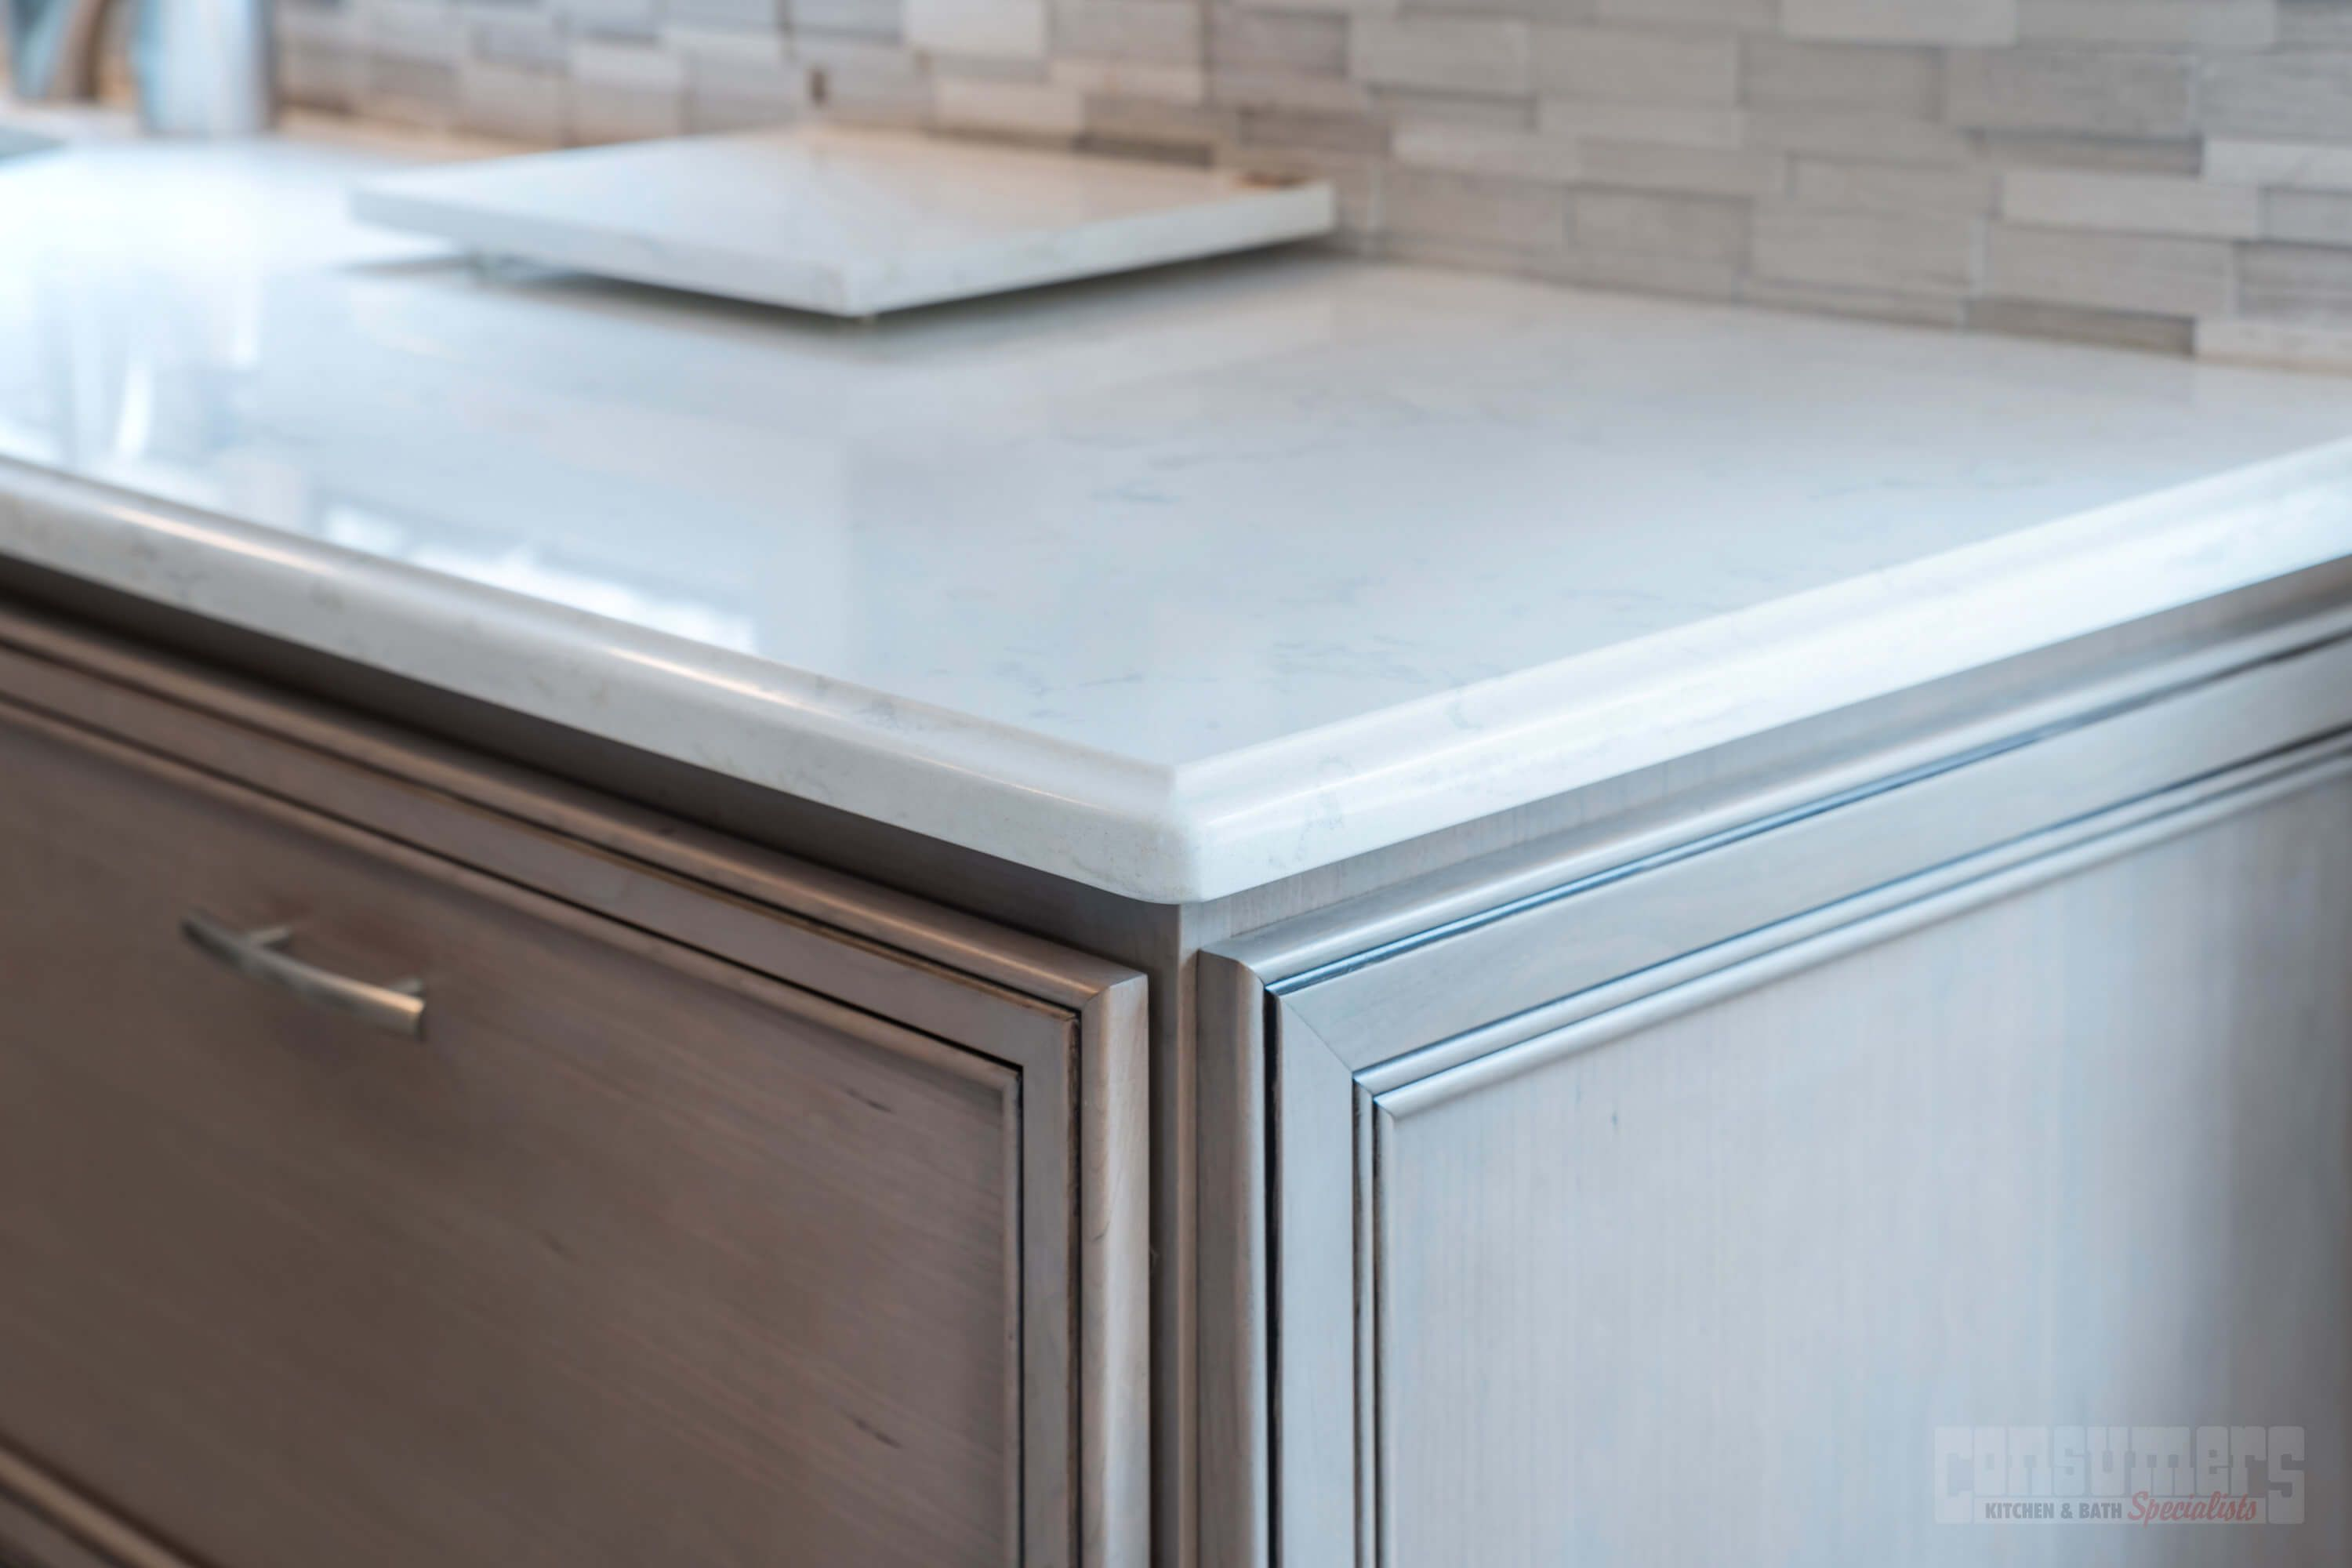 Pin by Consumers Kitchens & Baths on Holbrook Sophisticated ...